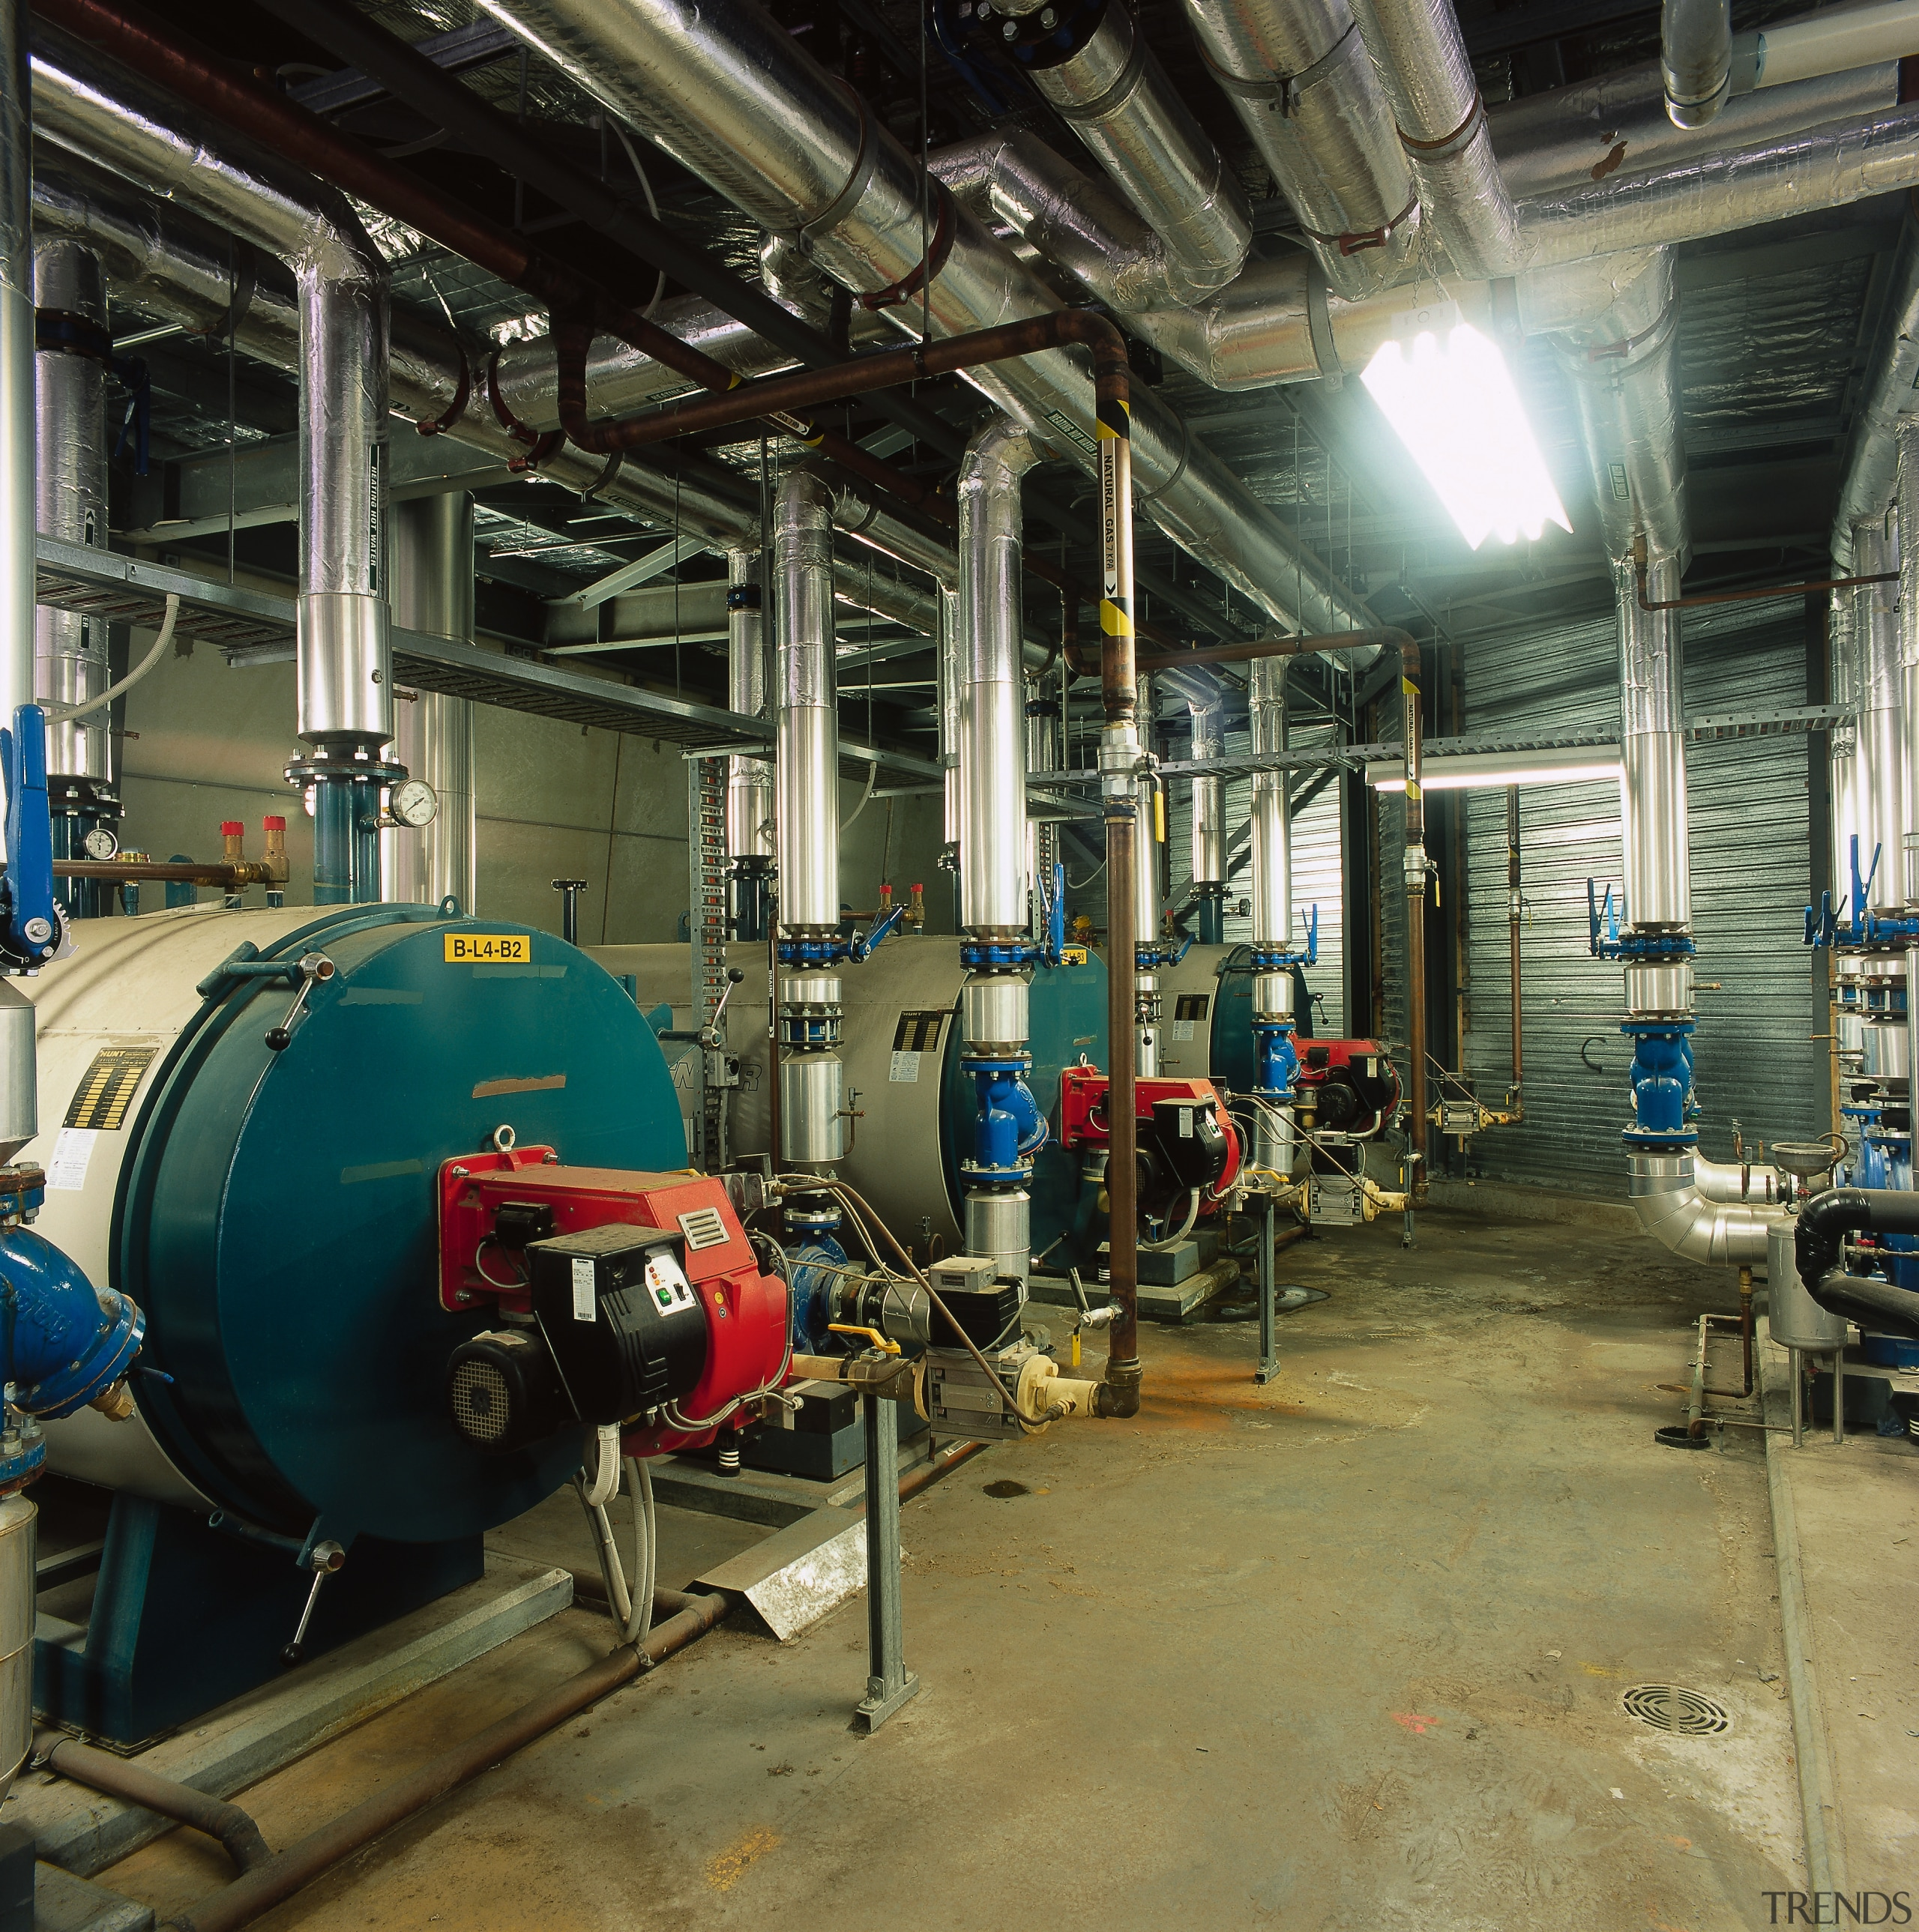 Machinery room for mechanical services at the MCG. engineering, factory, industry, machine, manufacturing, brown, black